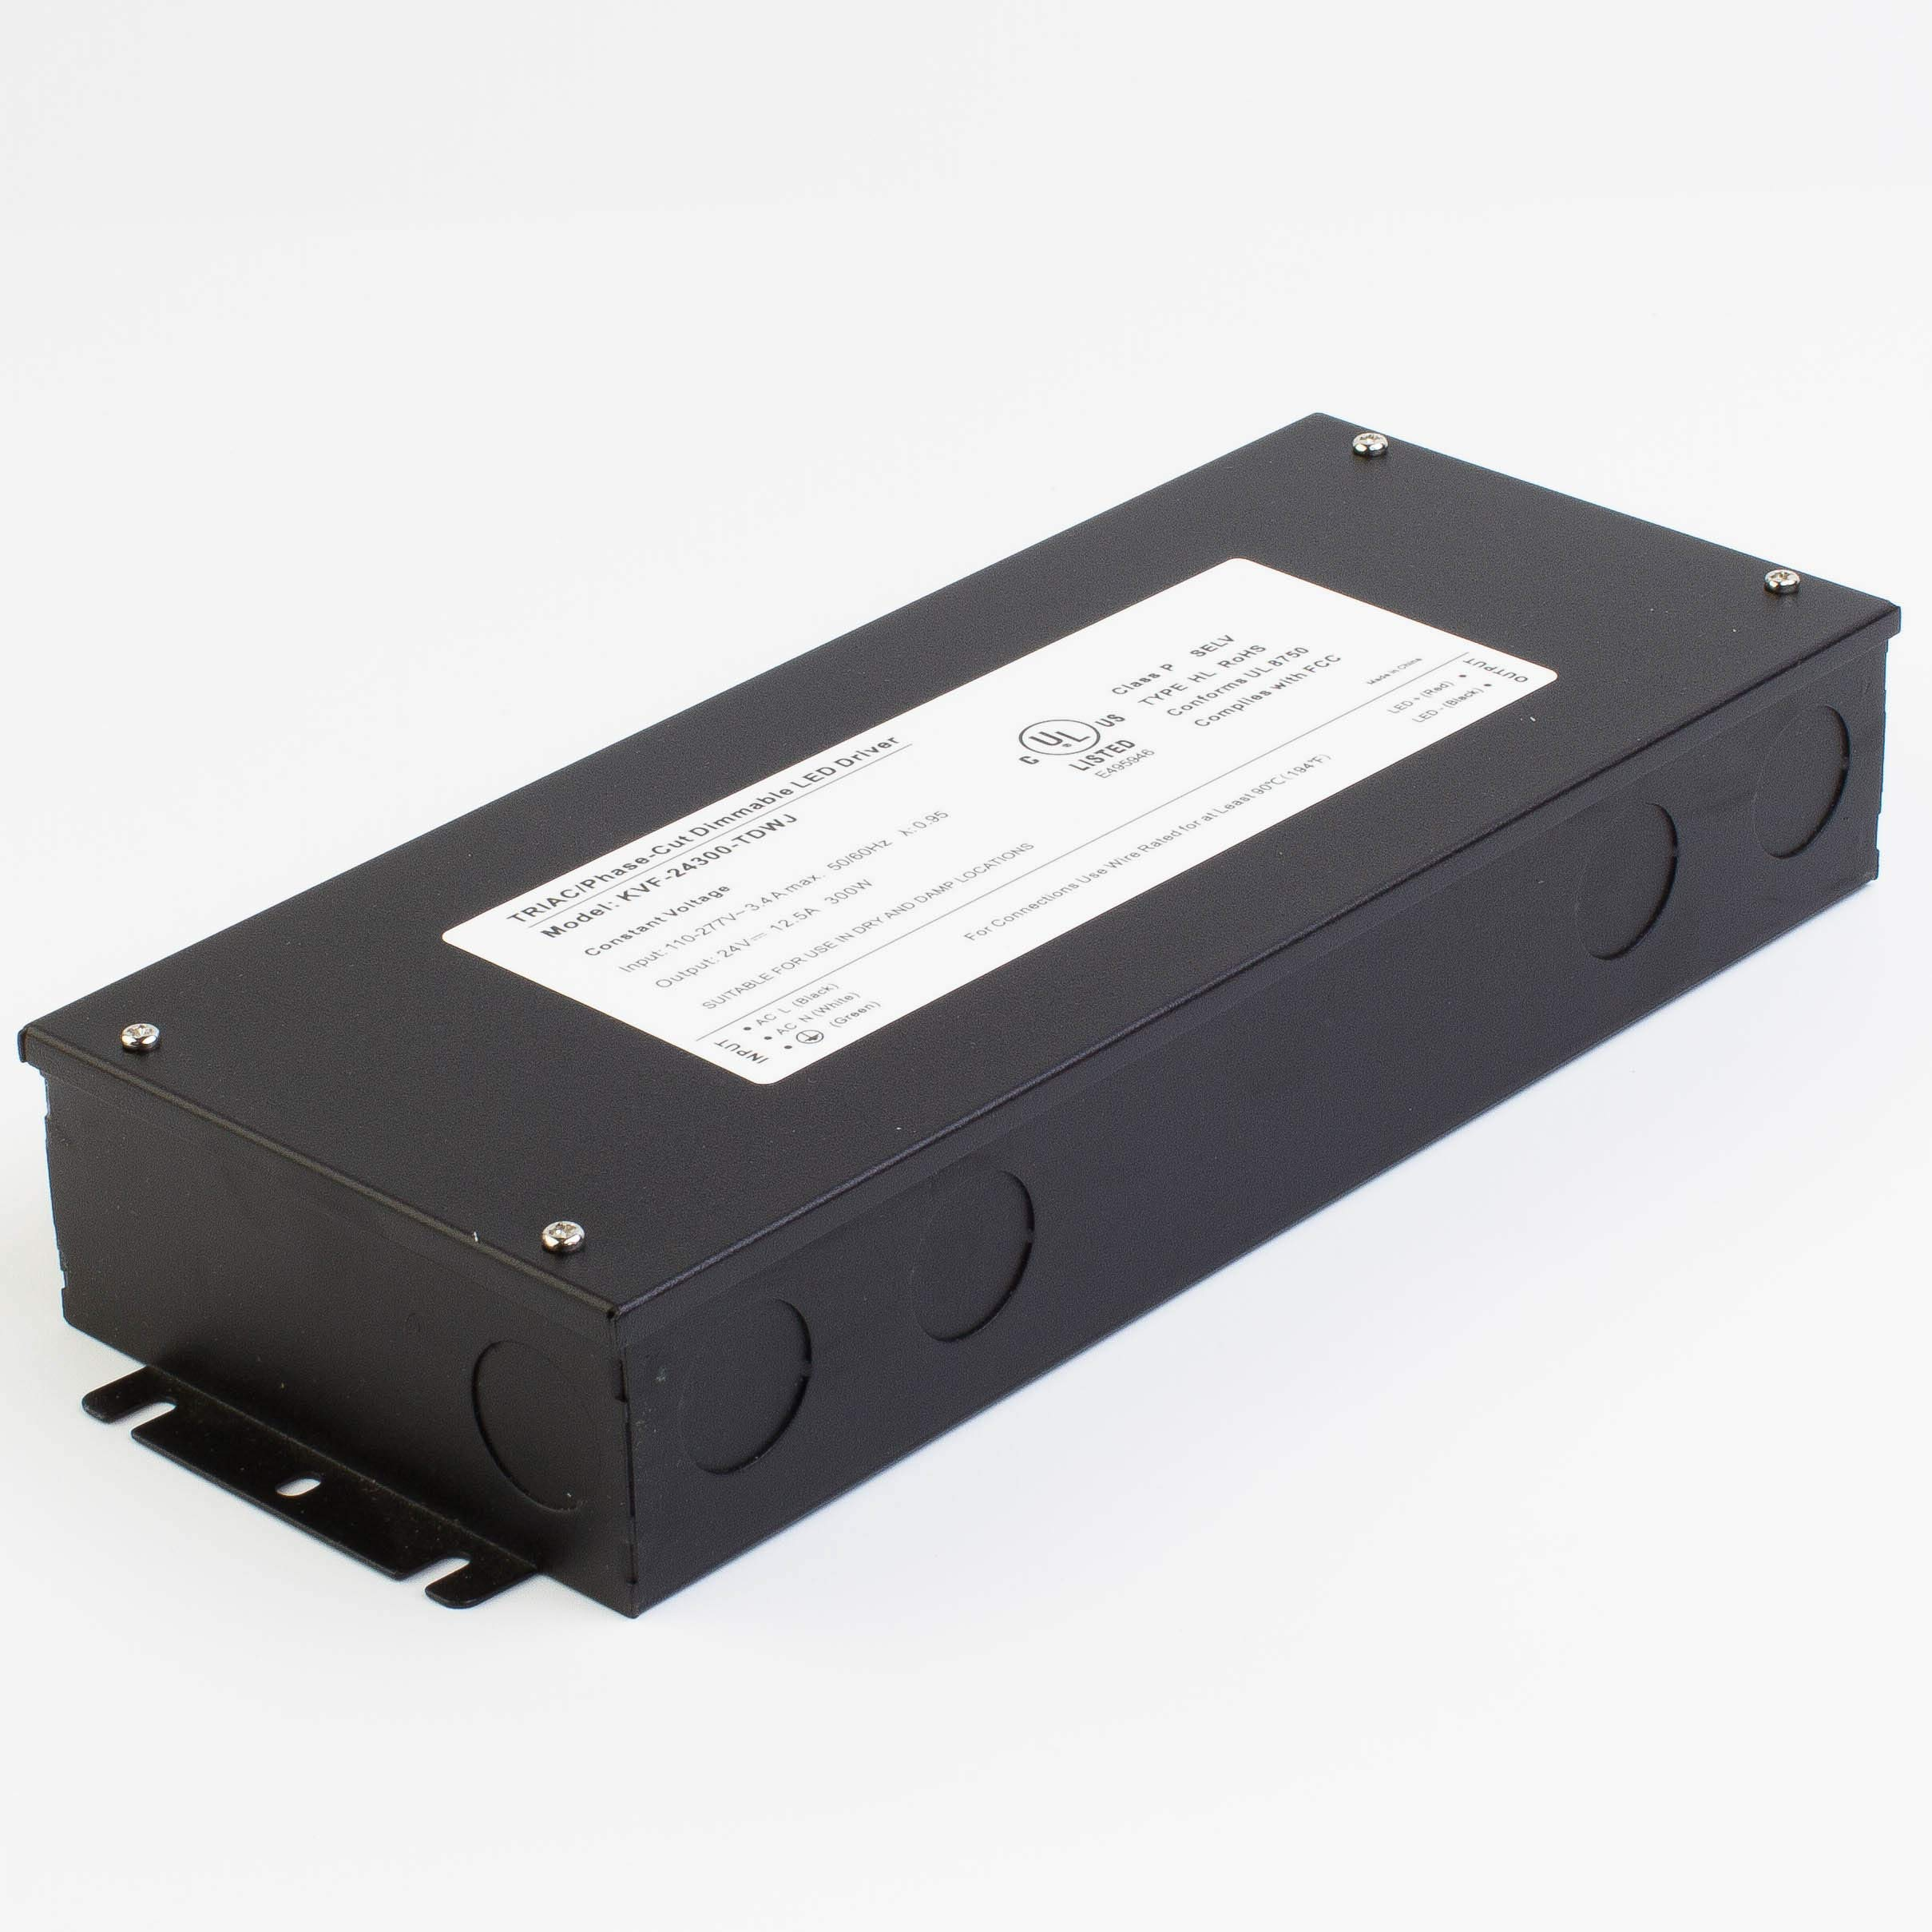 LEDupdates 24v UL Listed 300w Triac Dimmable Driver 110v - 277V AC to DC Transformer Constant Voltage Power Supply for LED Strip light Control by AC Wall Dimmer (24v 300w) by LEDUPDATES (Image #6)